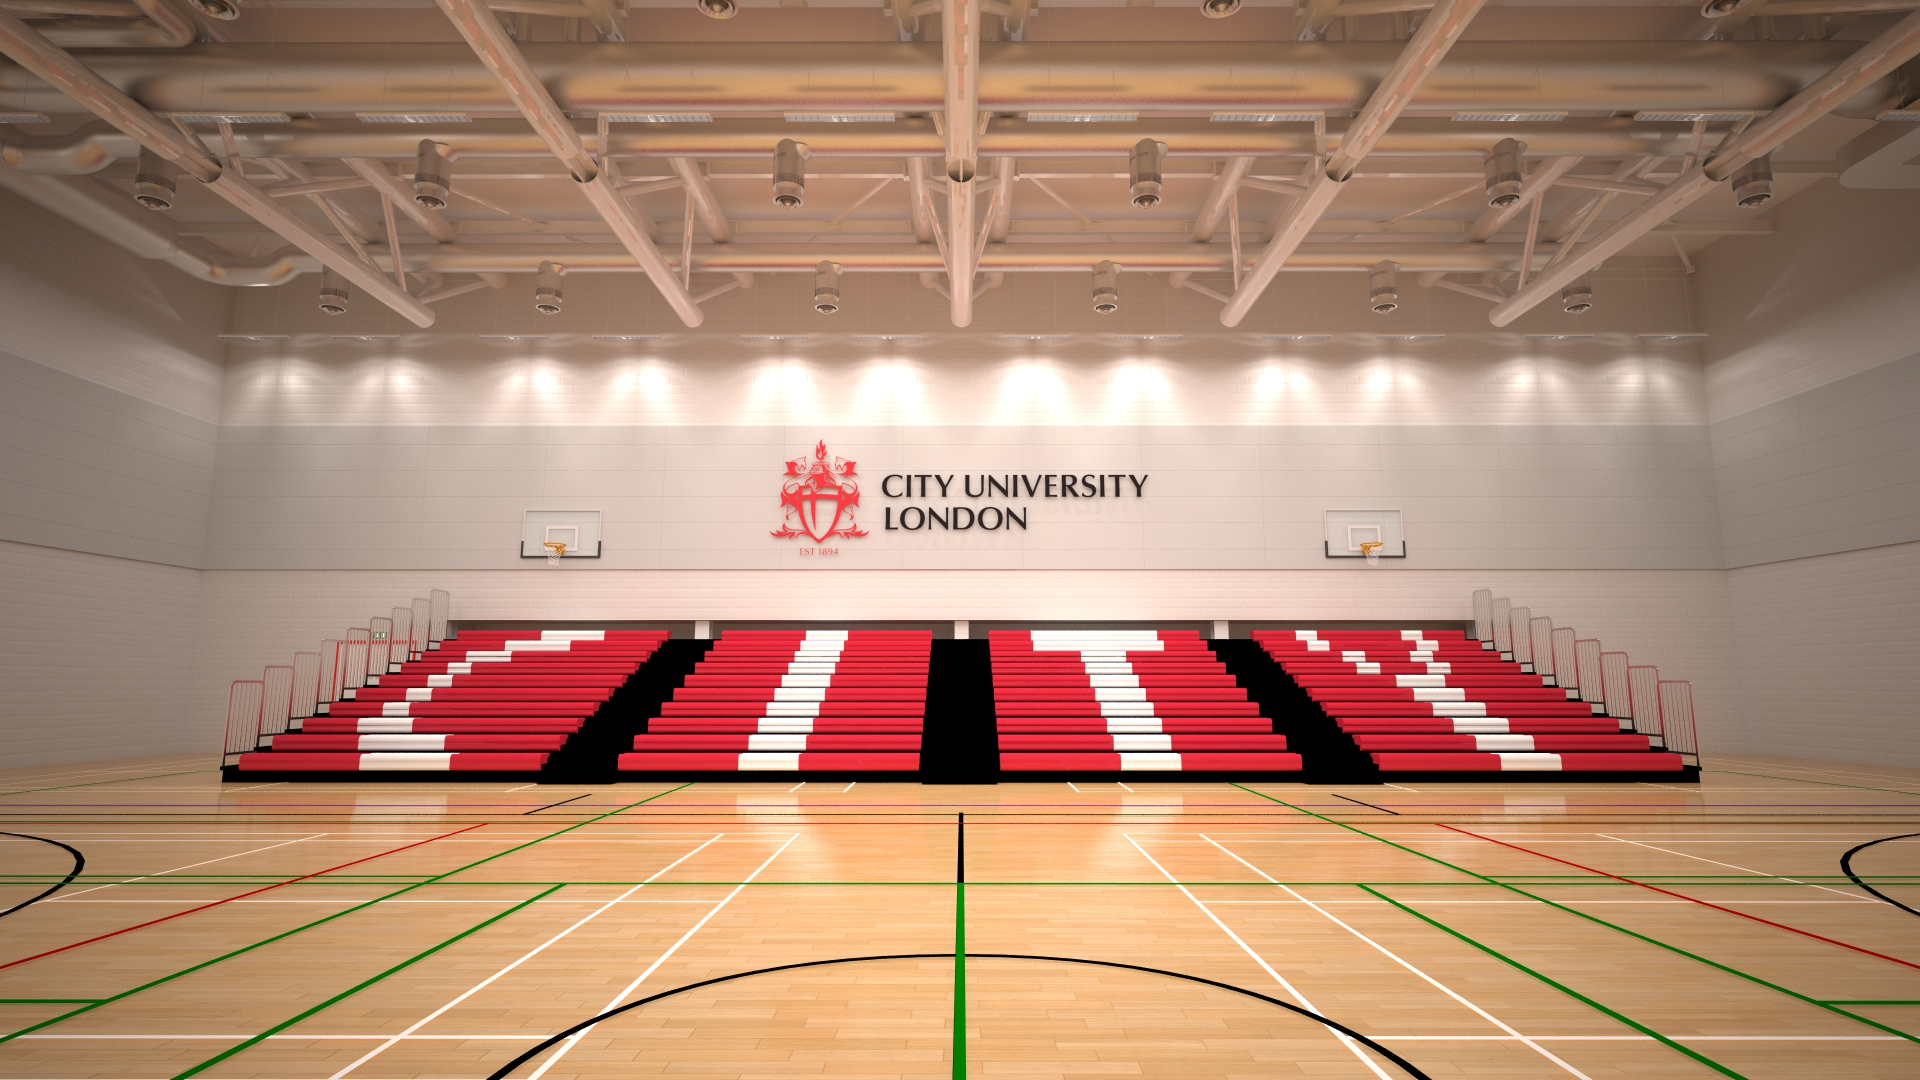 Seating in the Sports Hall at City, University of London